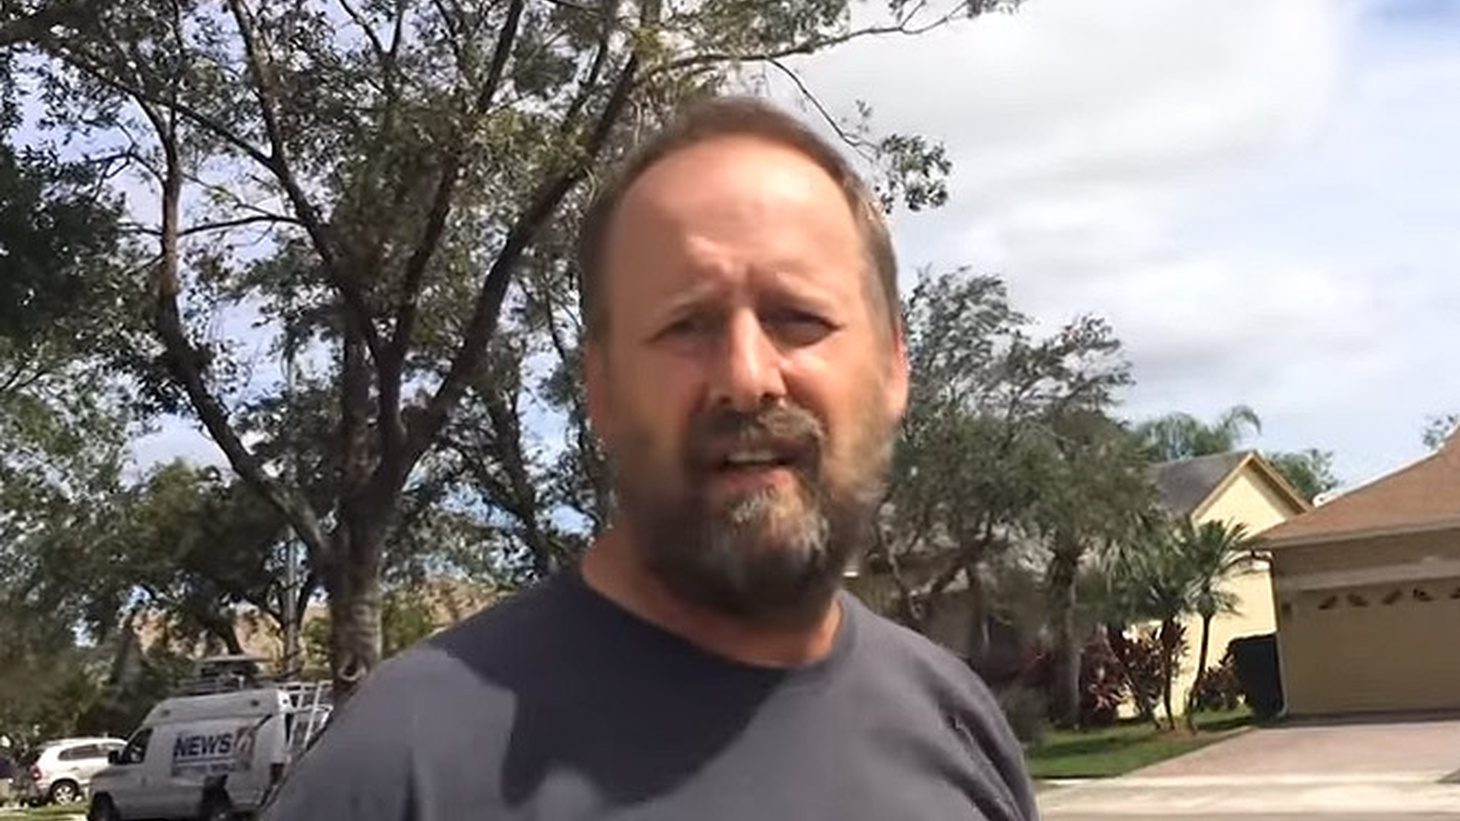 """Stephen Paddock was the man who killed at least 58 country-music concert-goers in Las Vegas on Sunday. What more do we know? Sheriff Joe Lombardo says he was leading a """"secret life."""" Paddock's surviving brother Eric, struggles to understand. He called his brother a gambler, but said that, """"Steve took care of the people he loved."""